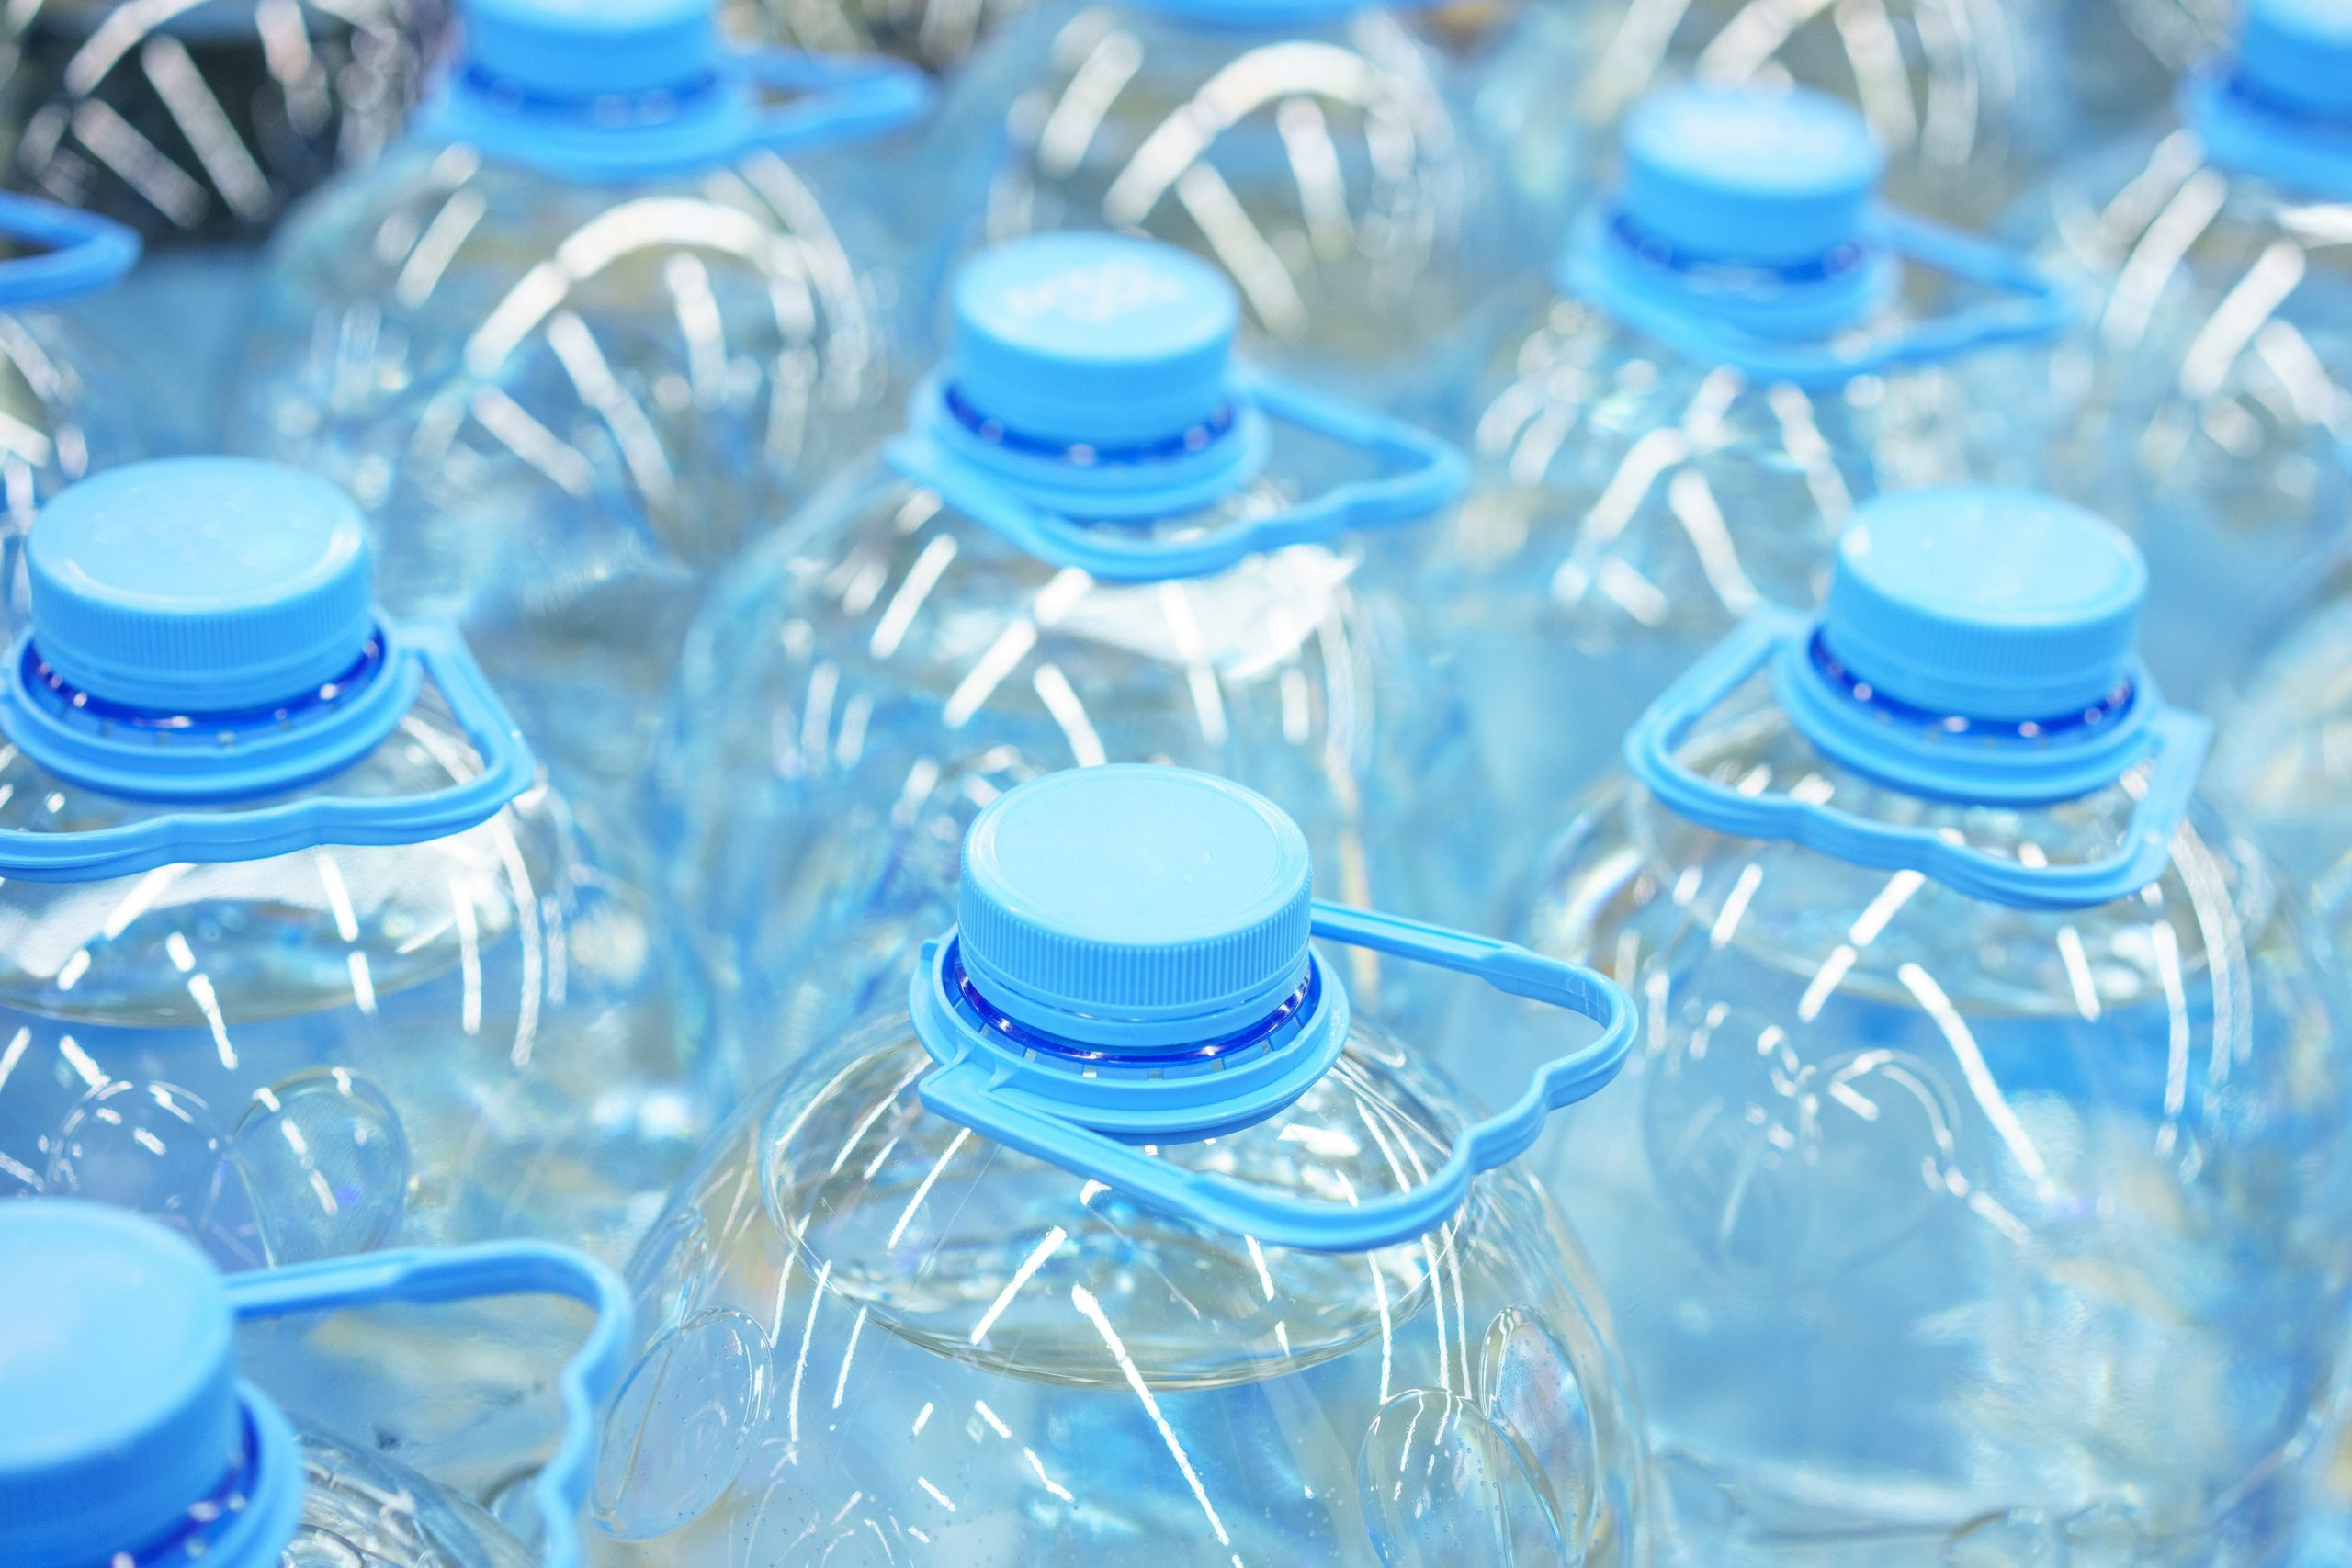 Five-liter plastic drinking water bottles close-up, soft focus